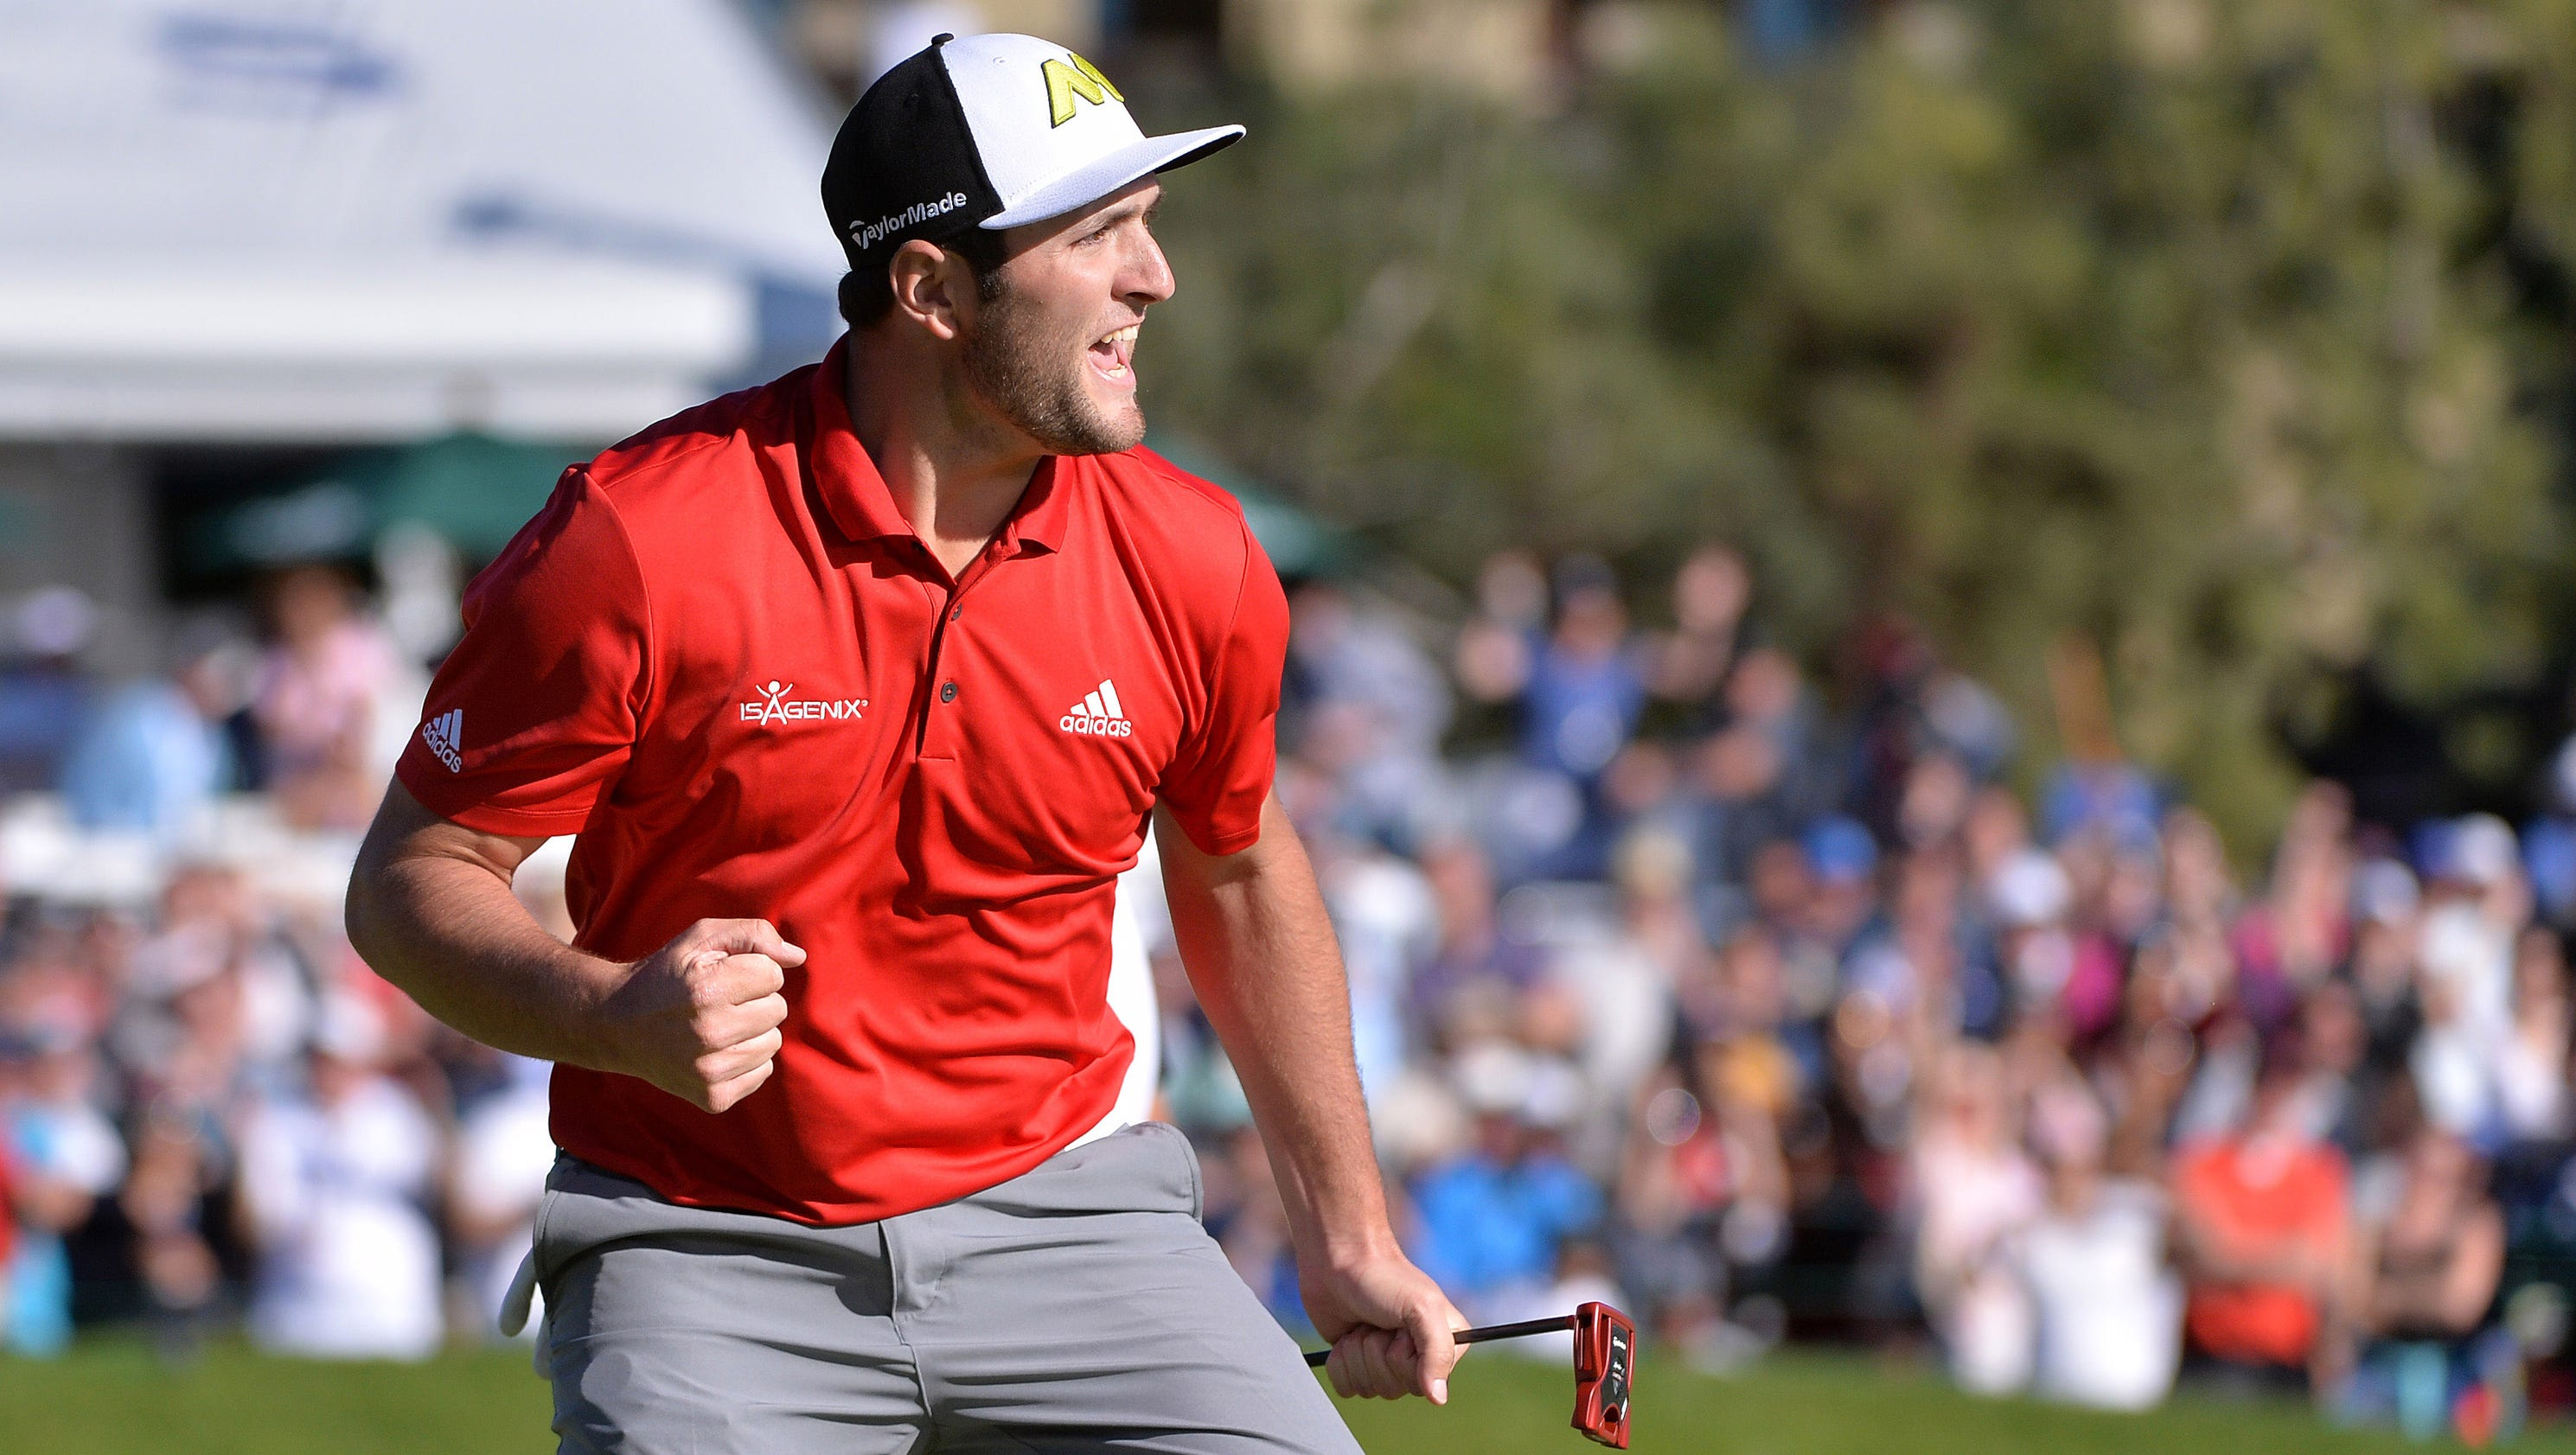 Jon Rahm wins star-studded Farmers Insurance Open